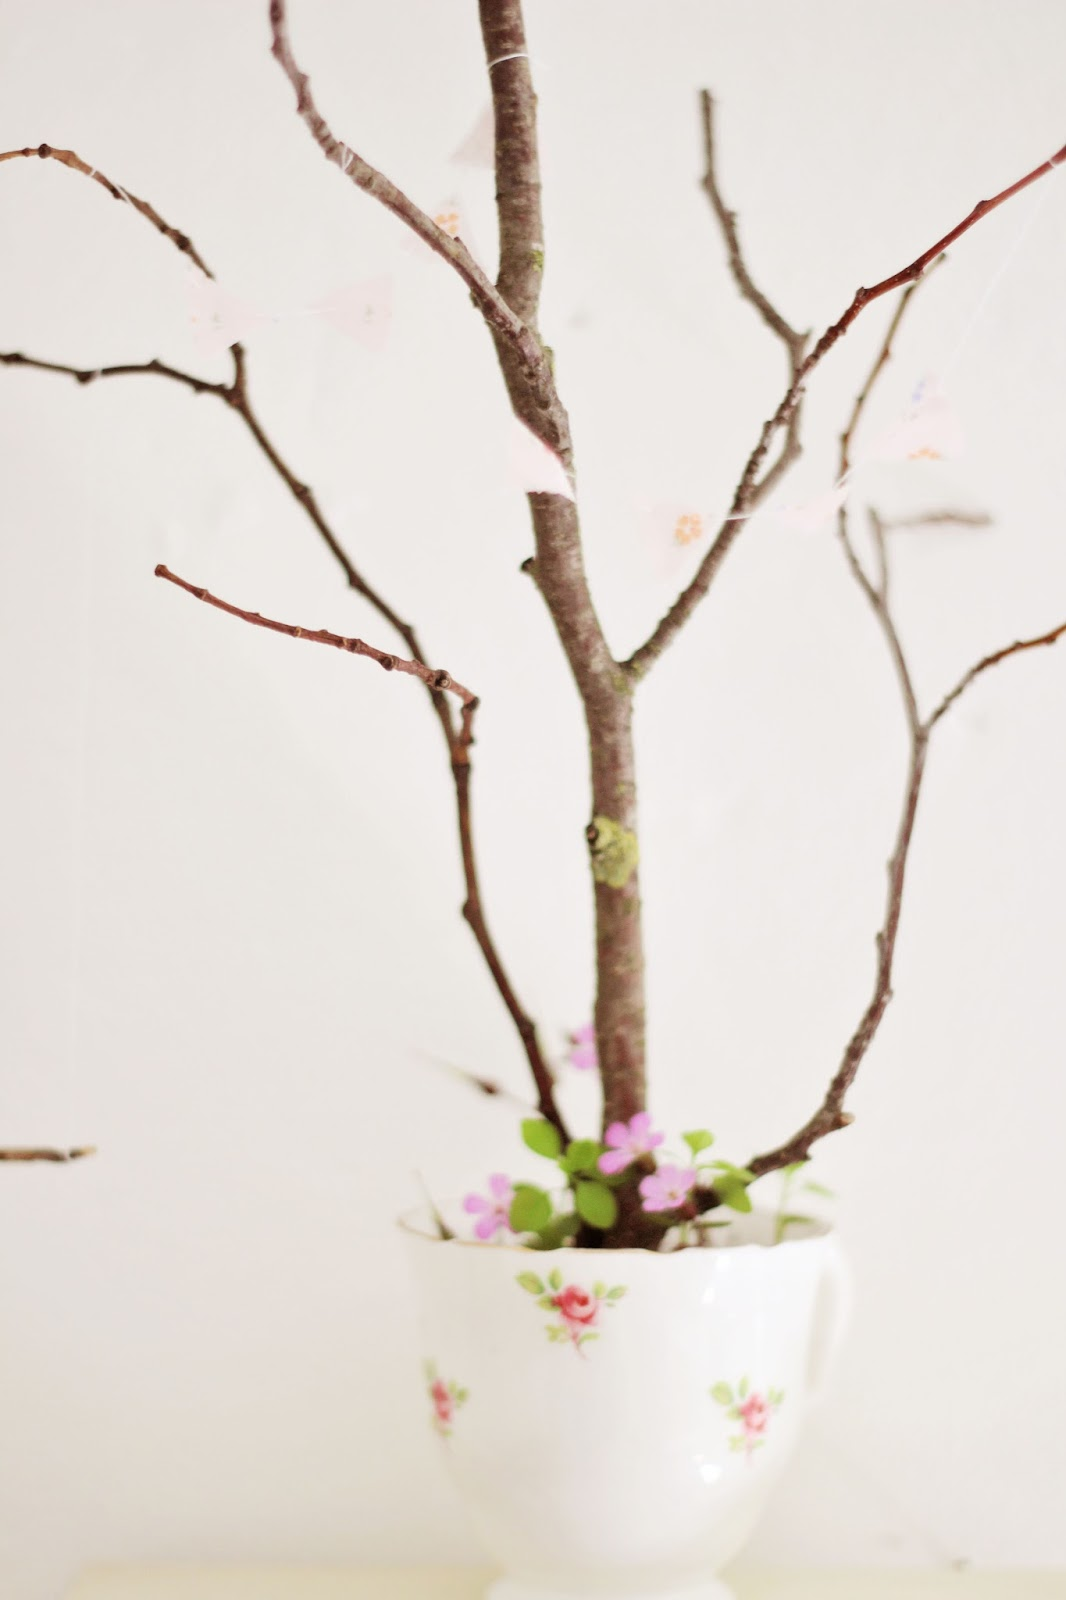 how to make a frangipani branch out